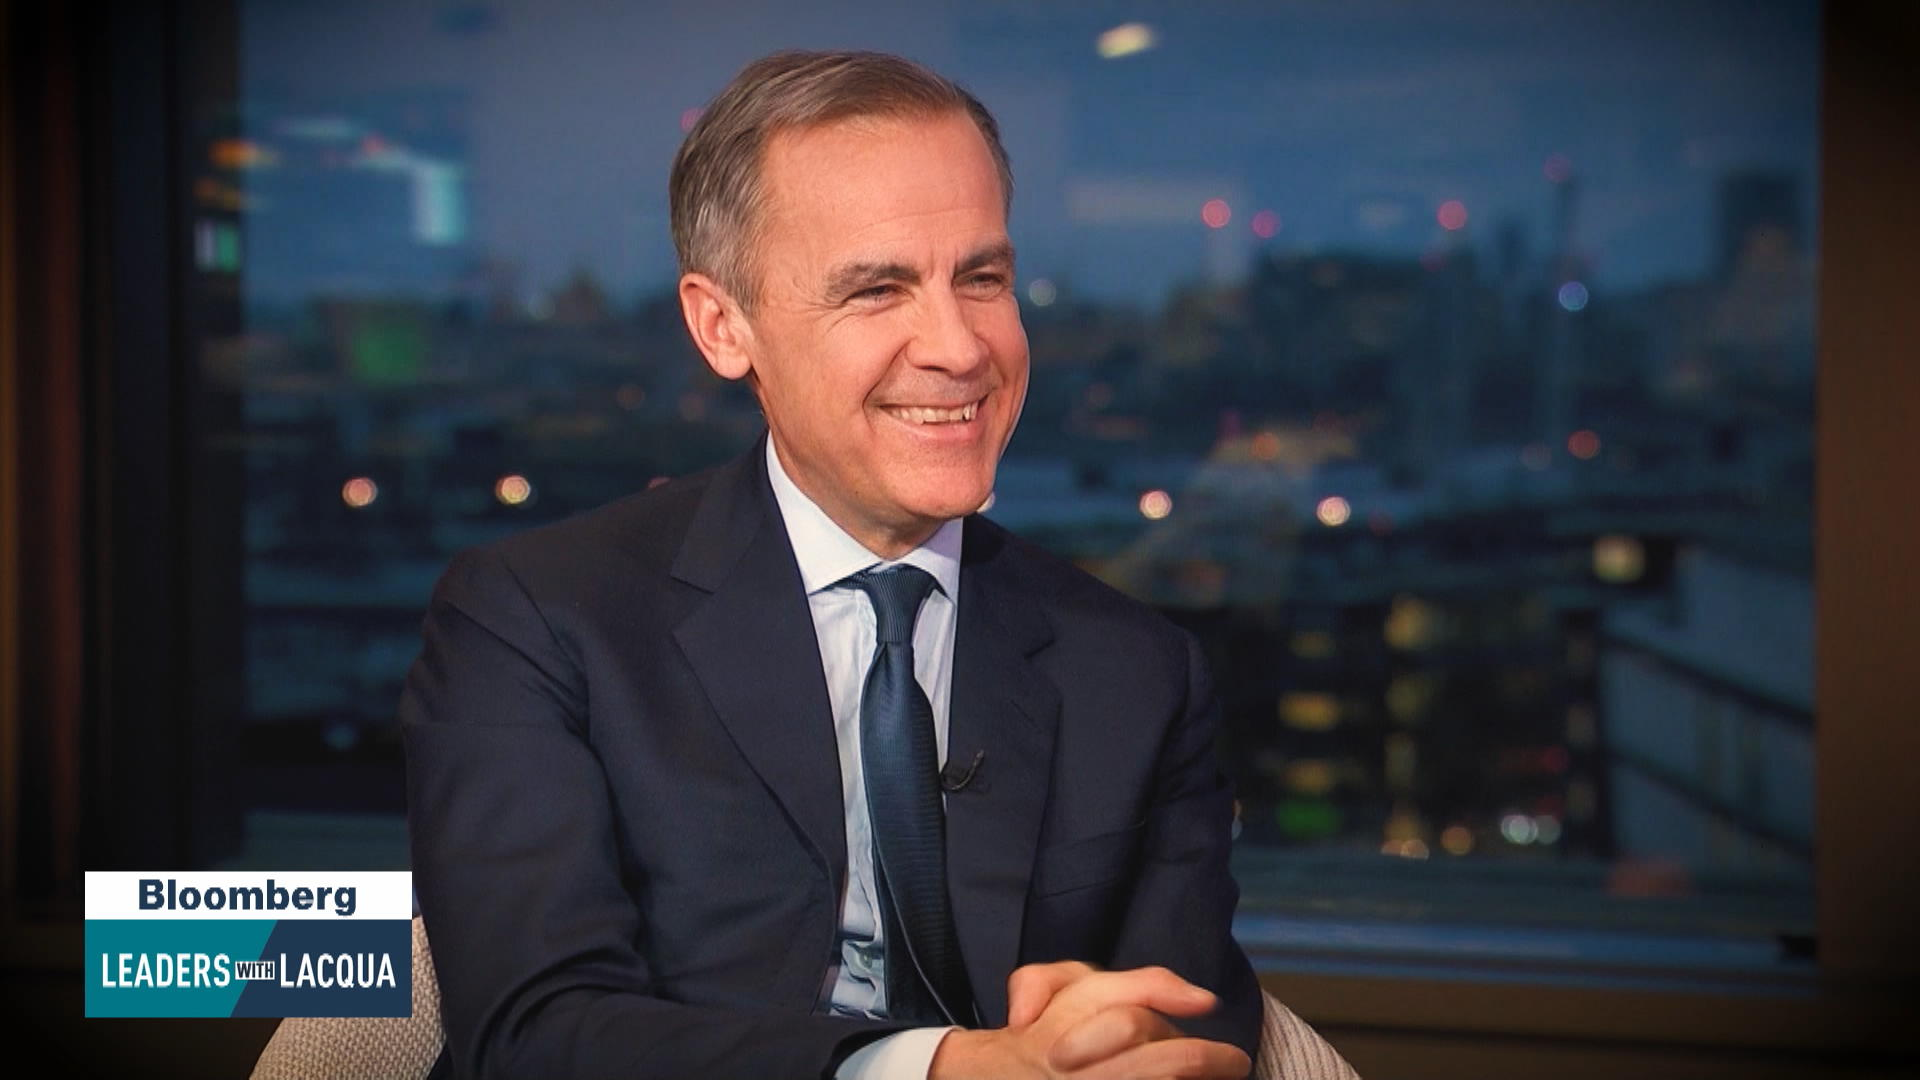 Leaders with Lacqua: Bank of England Governor Mark Carney